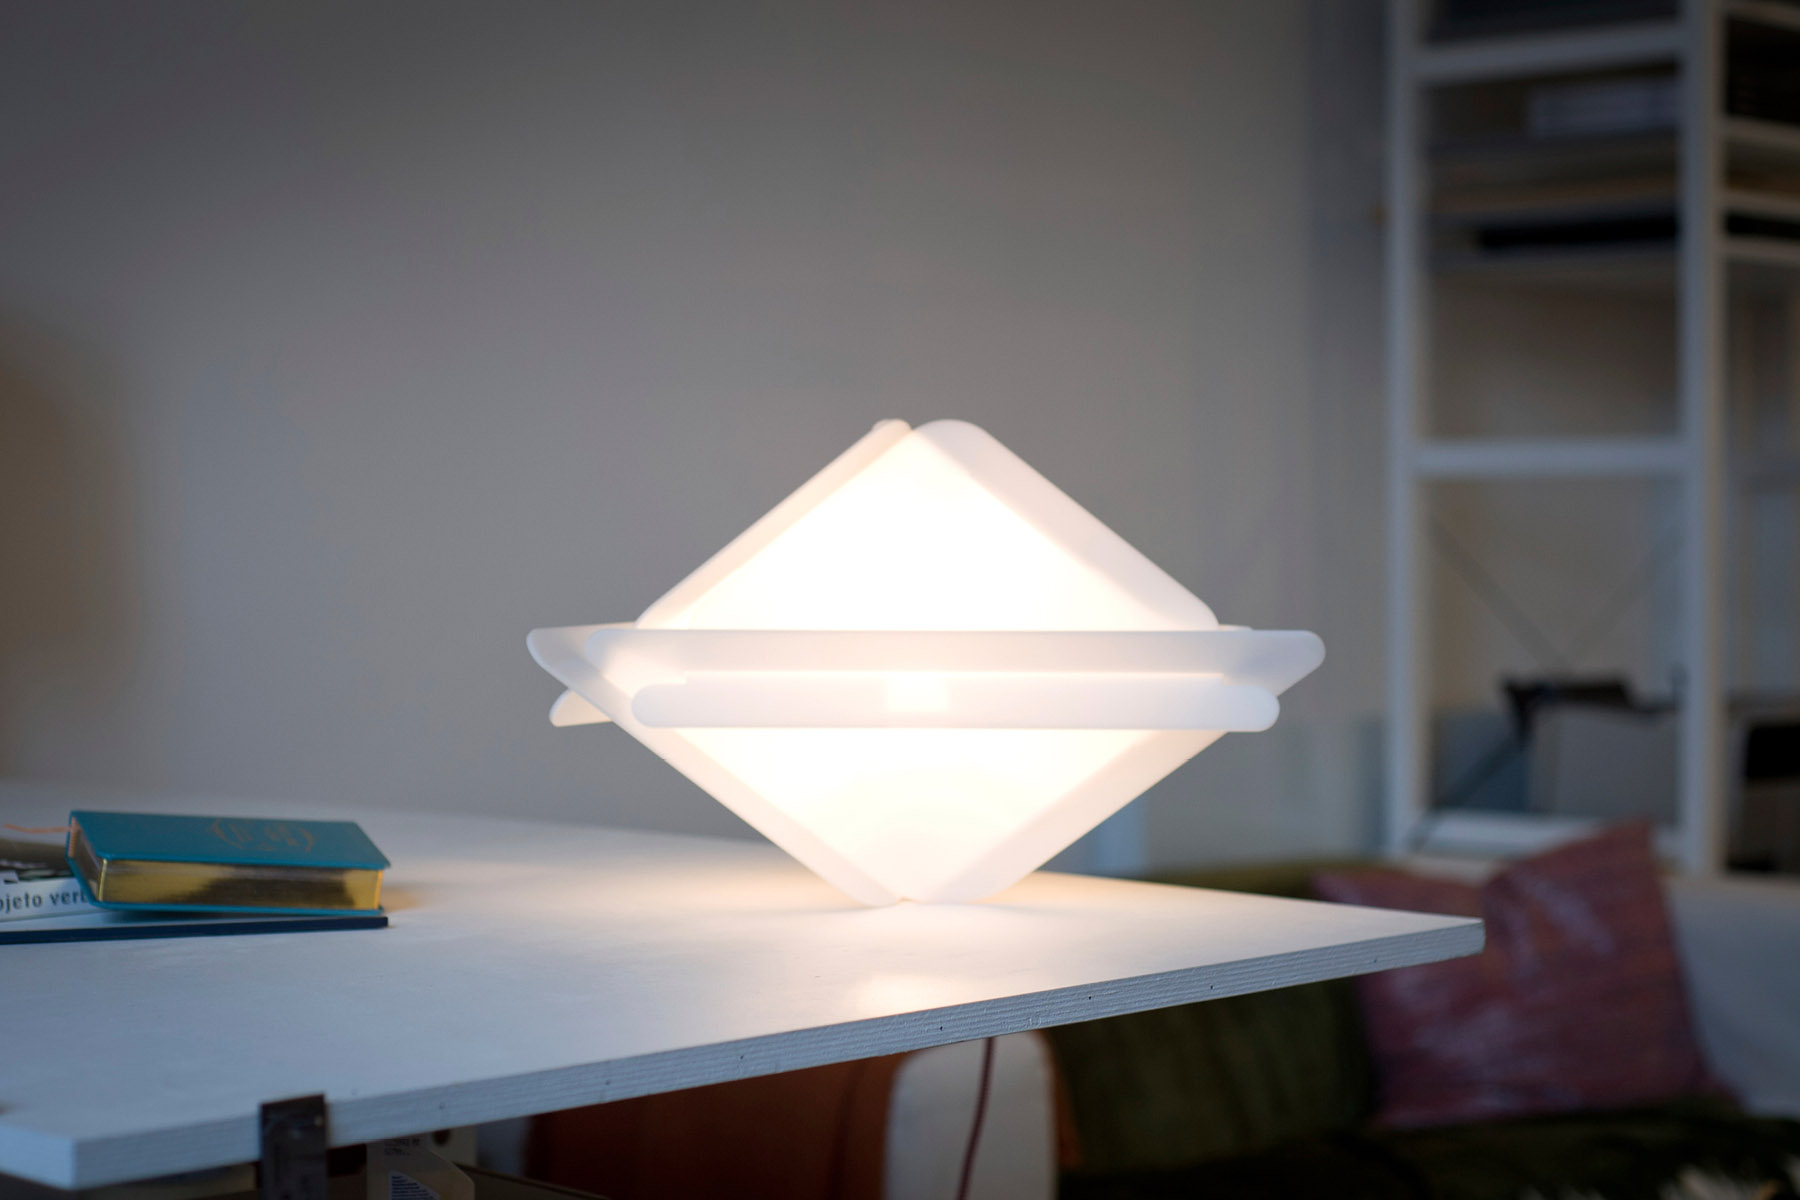 Triangular lamp on its tip